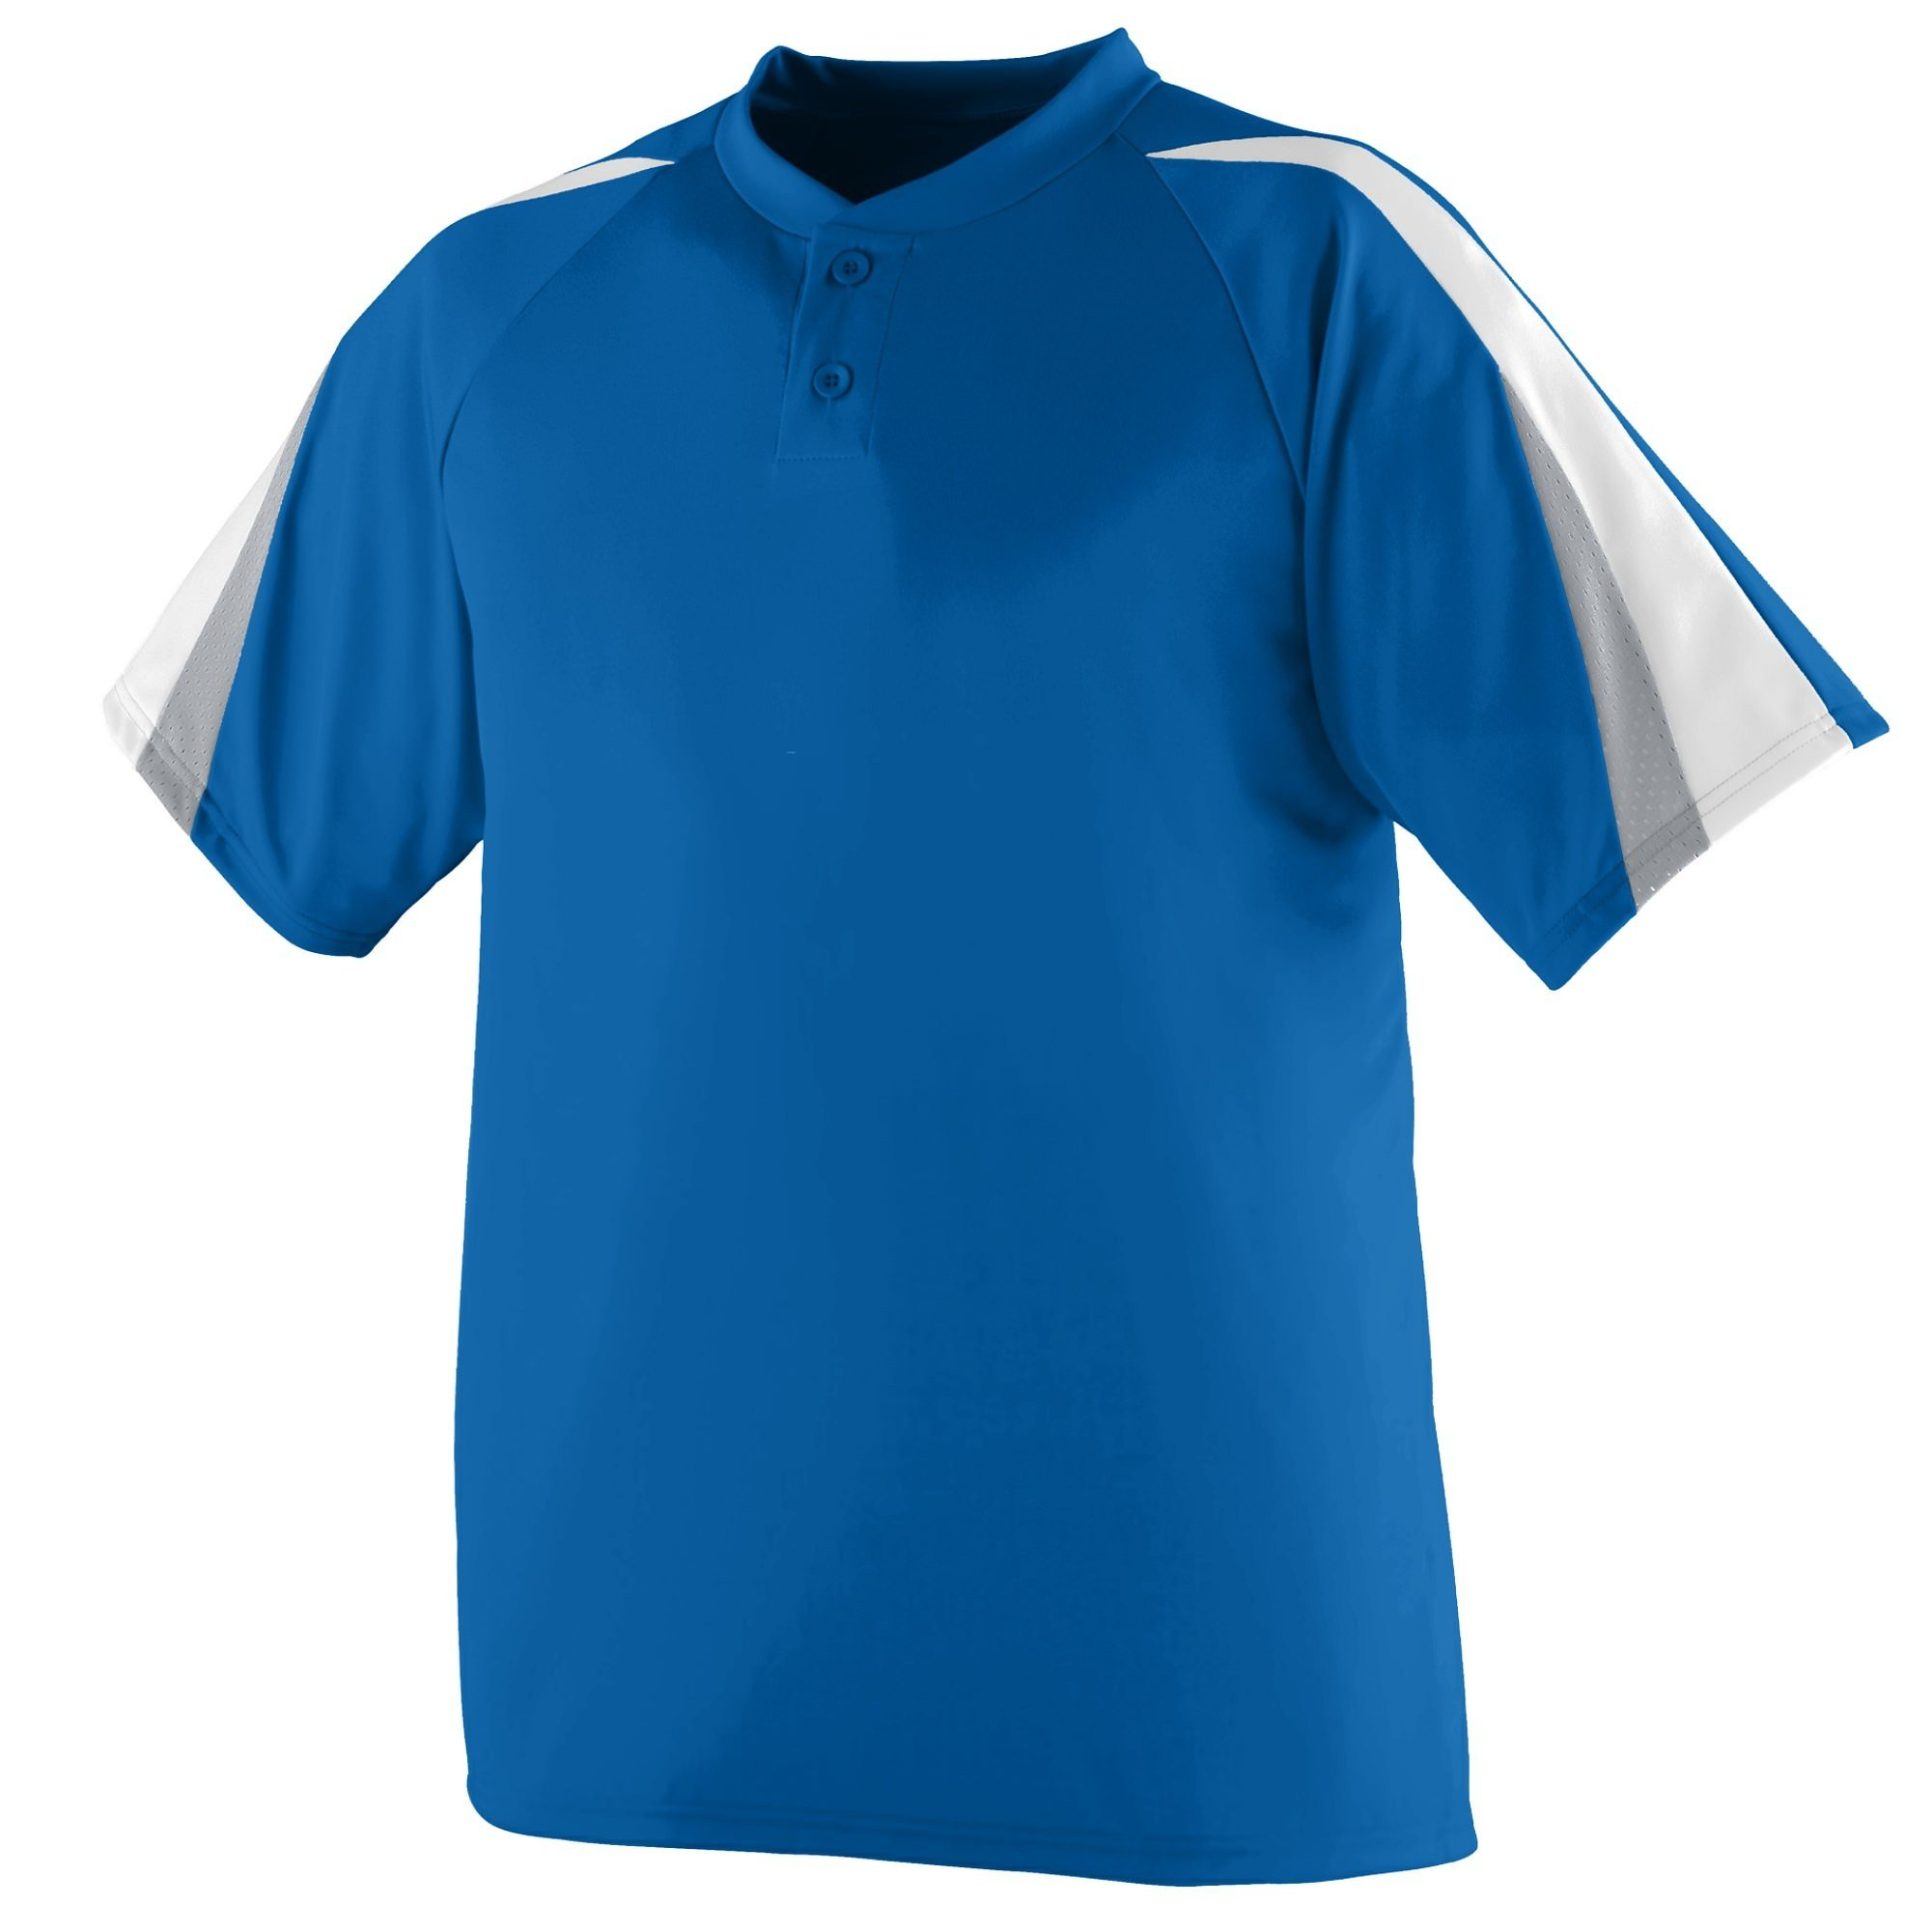 Augusta Sportswear Power Plus Jersey M Royal/White/Silver Grey by Augusta Sportswear